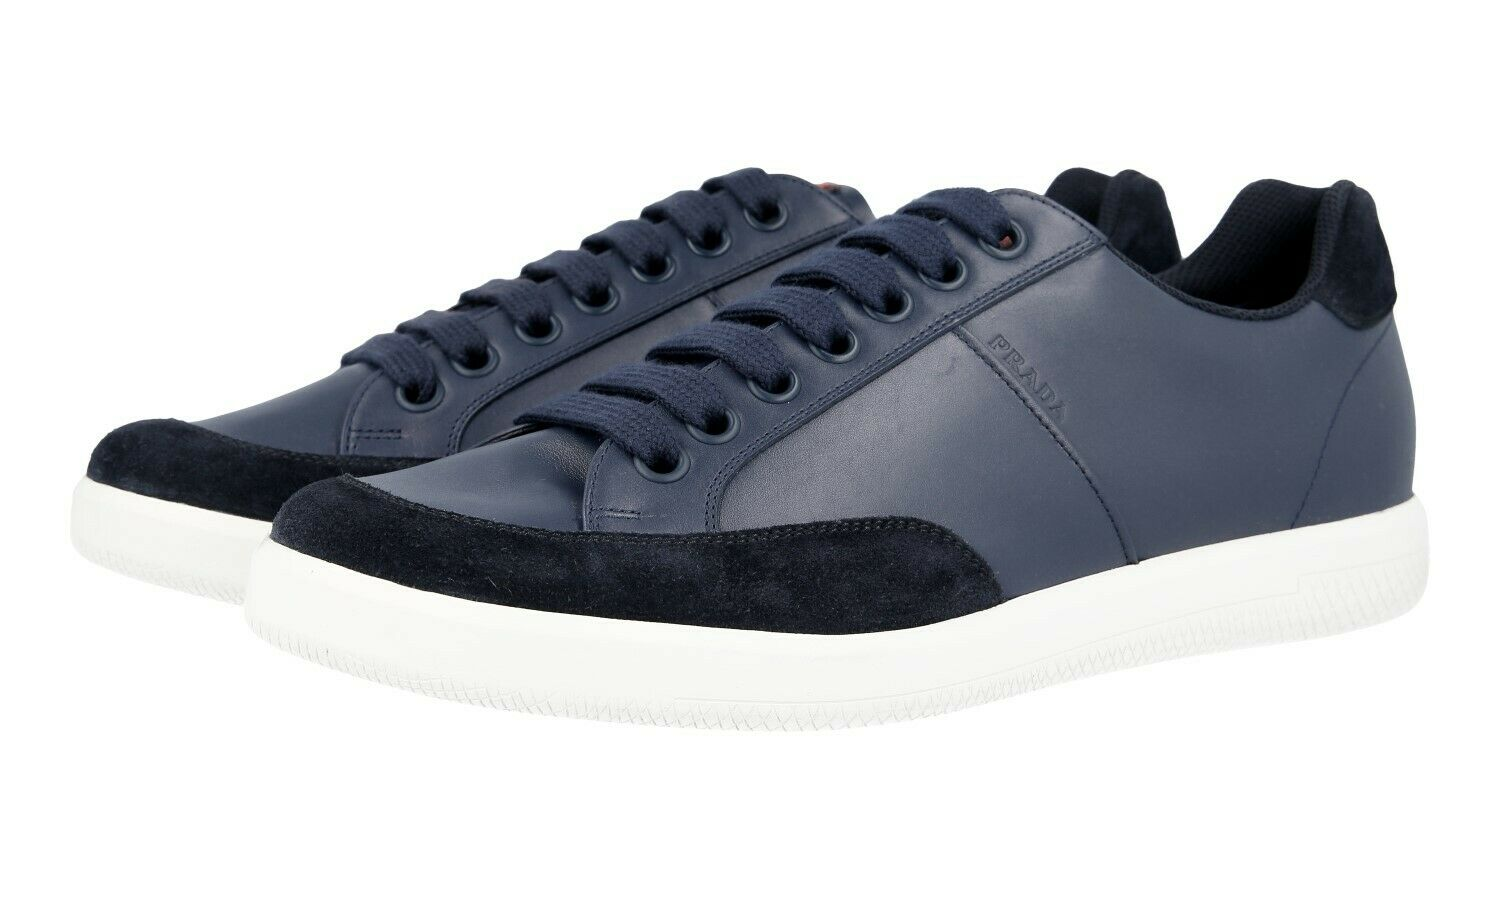 AUTH LUXURY PRADA SNEAKERS SHOES 4E3027 blueE NEW US 10